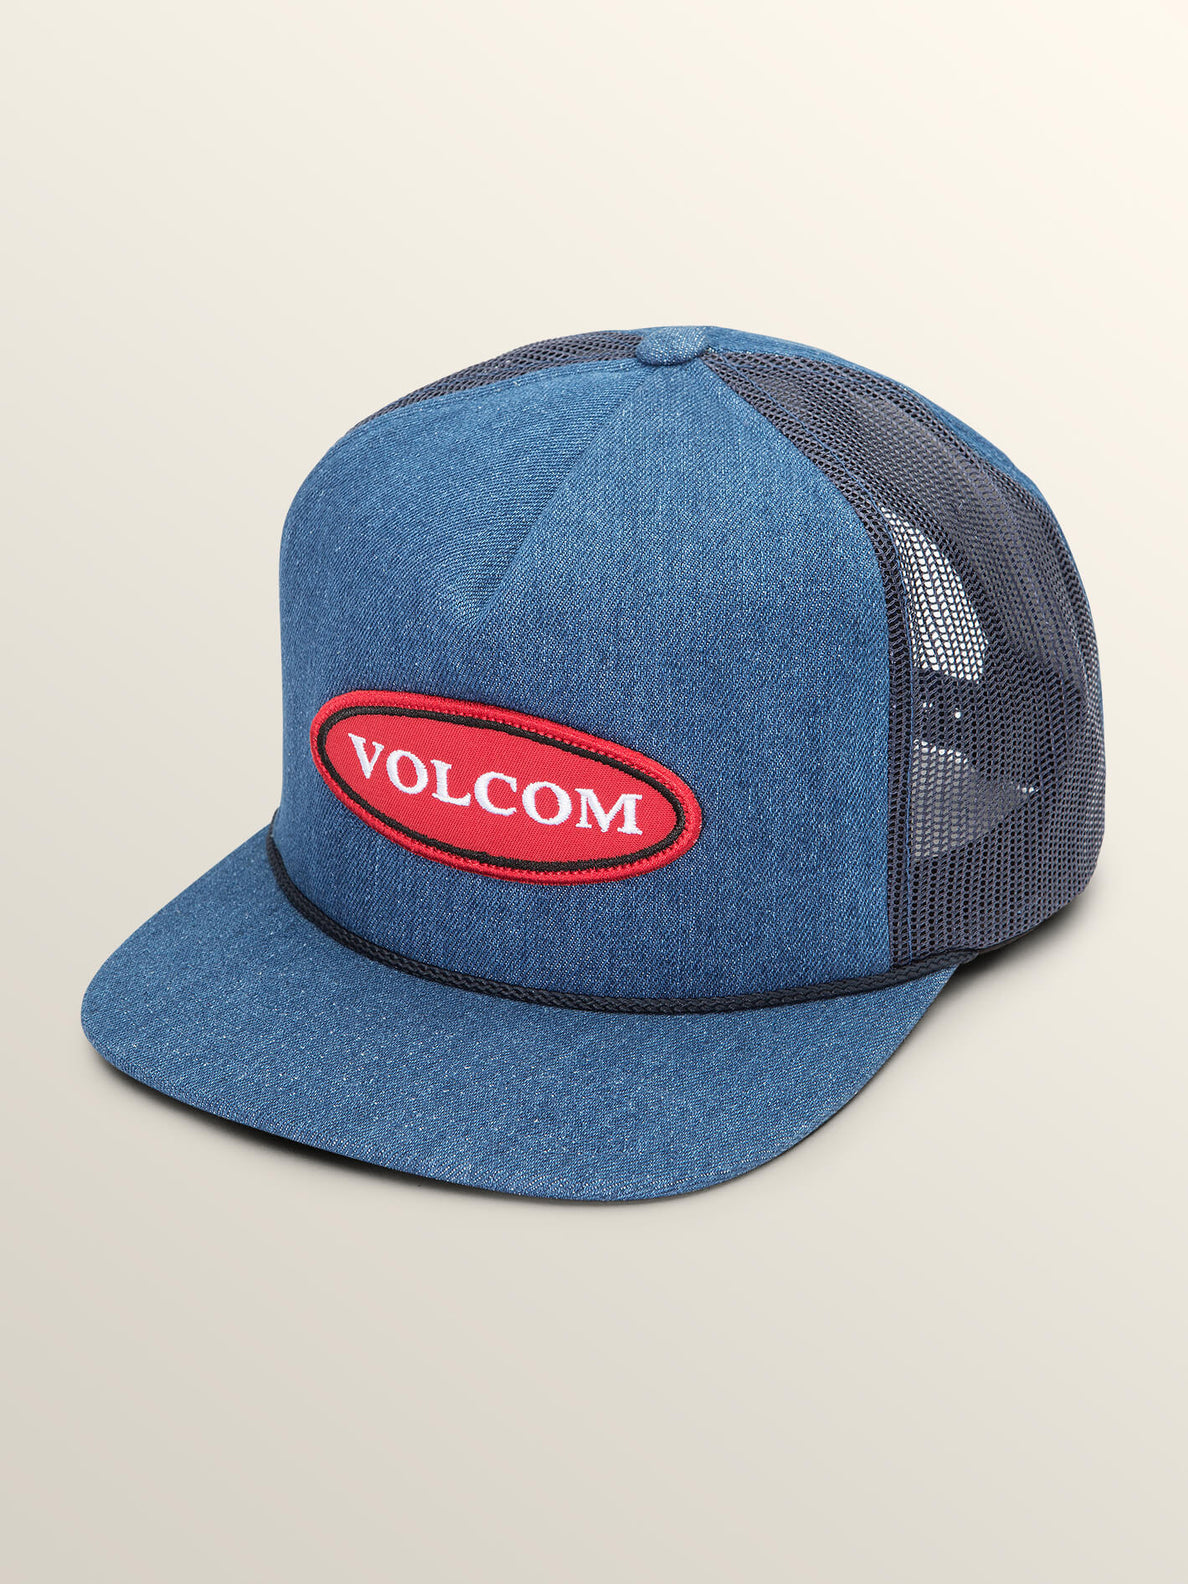 Logger Cheese Hat In Indigo, Front View